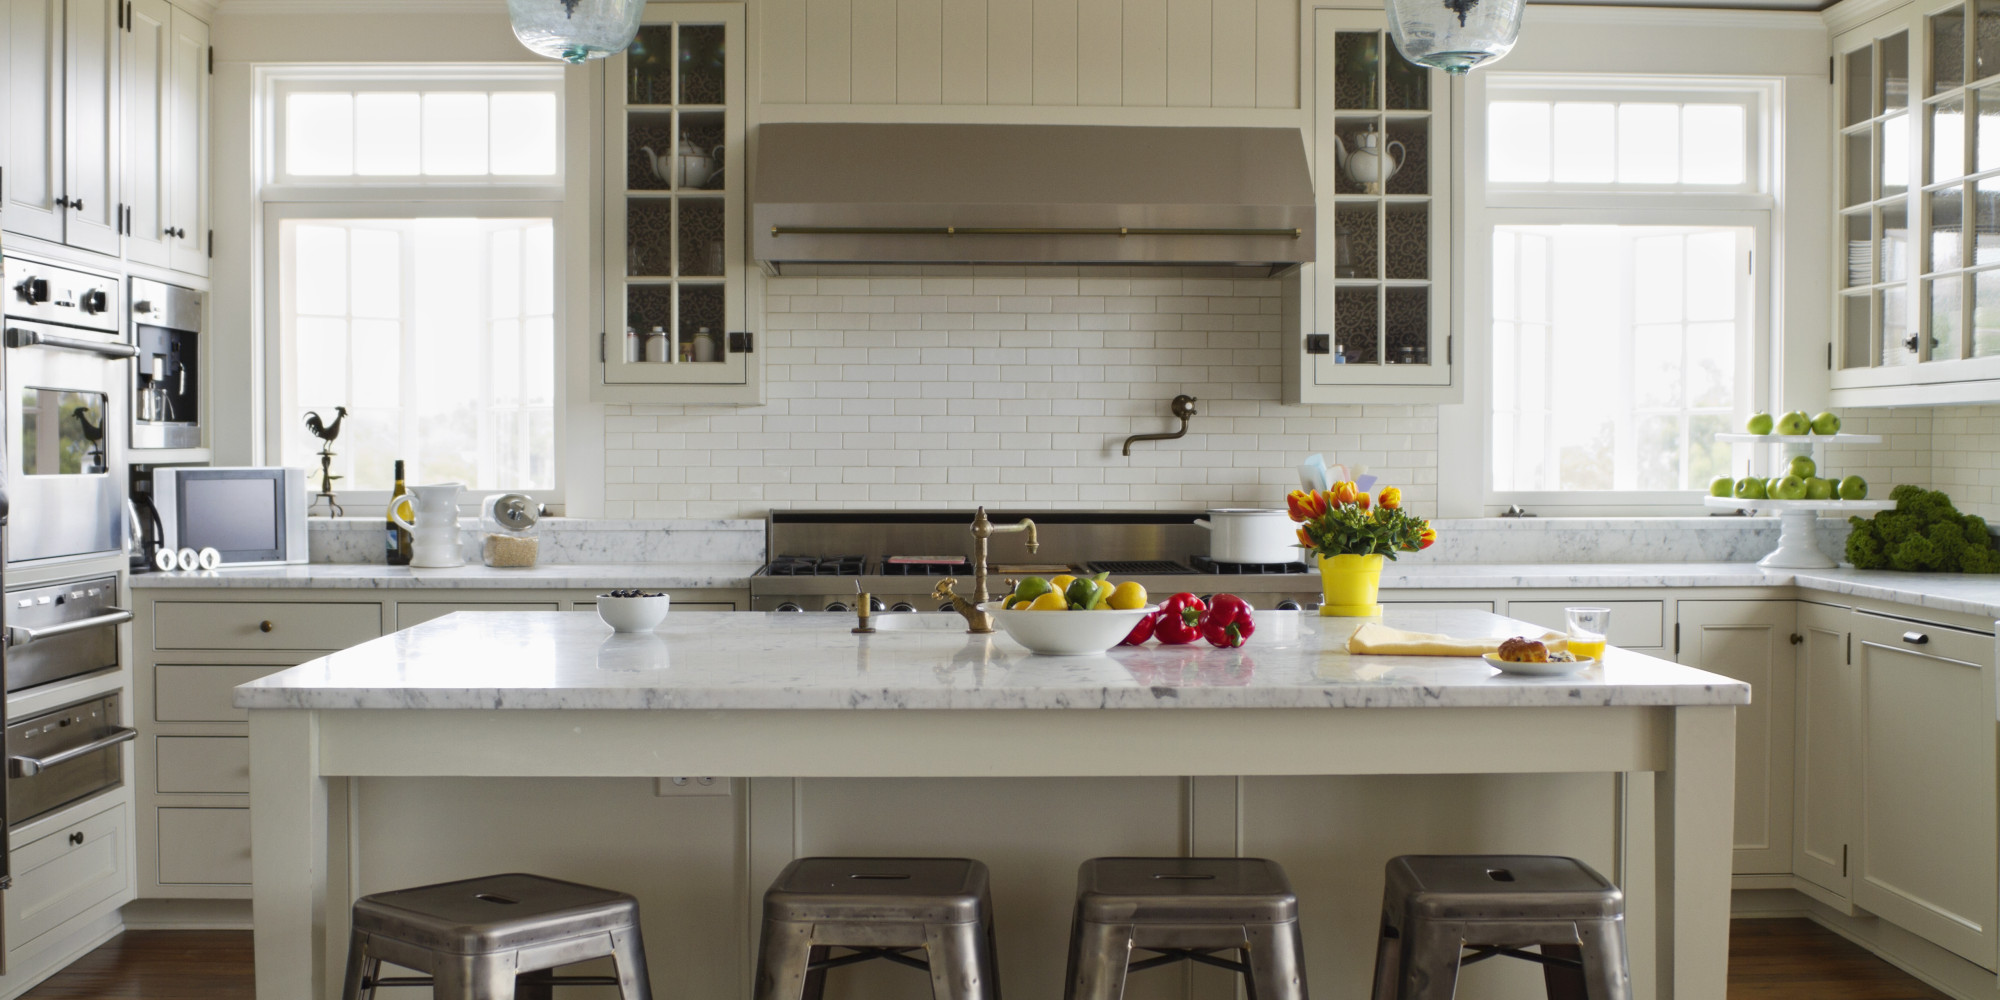 White Kitchen 2014 the 3 biggest kitchen trends of 2014 might surprise you (photos